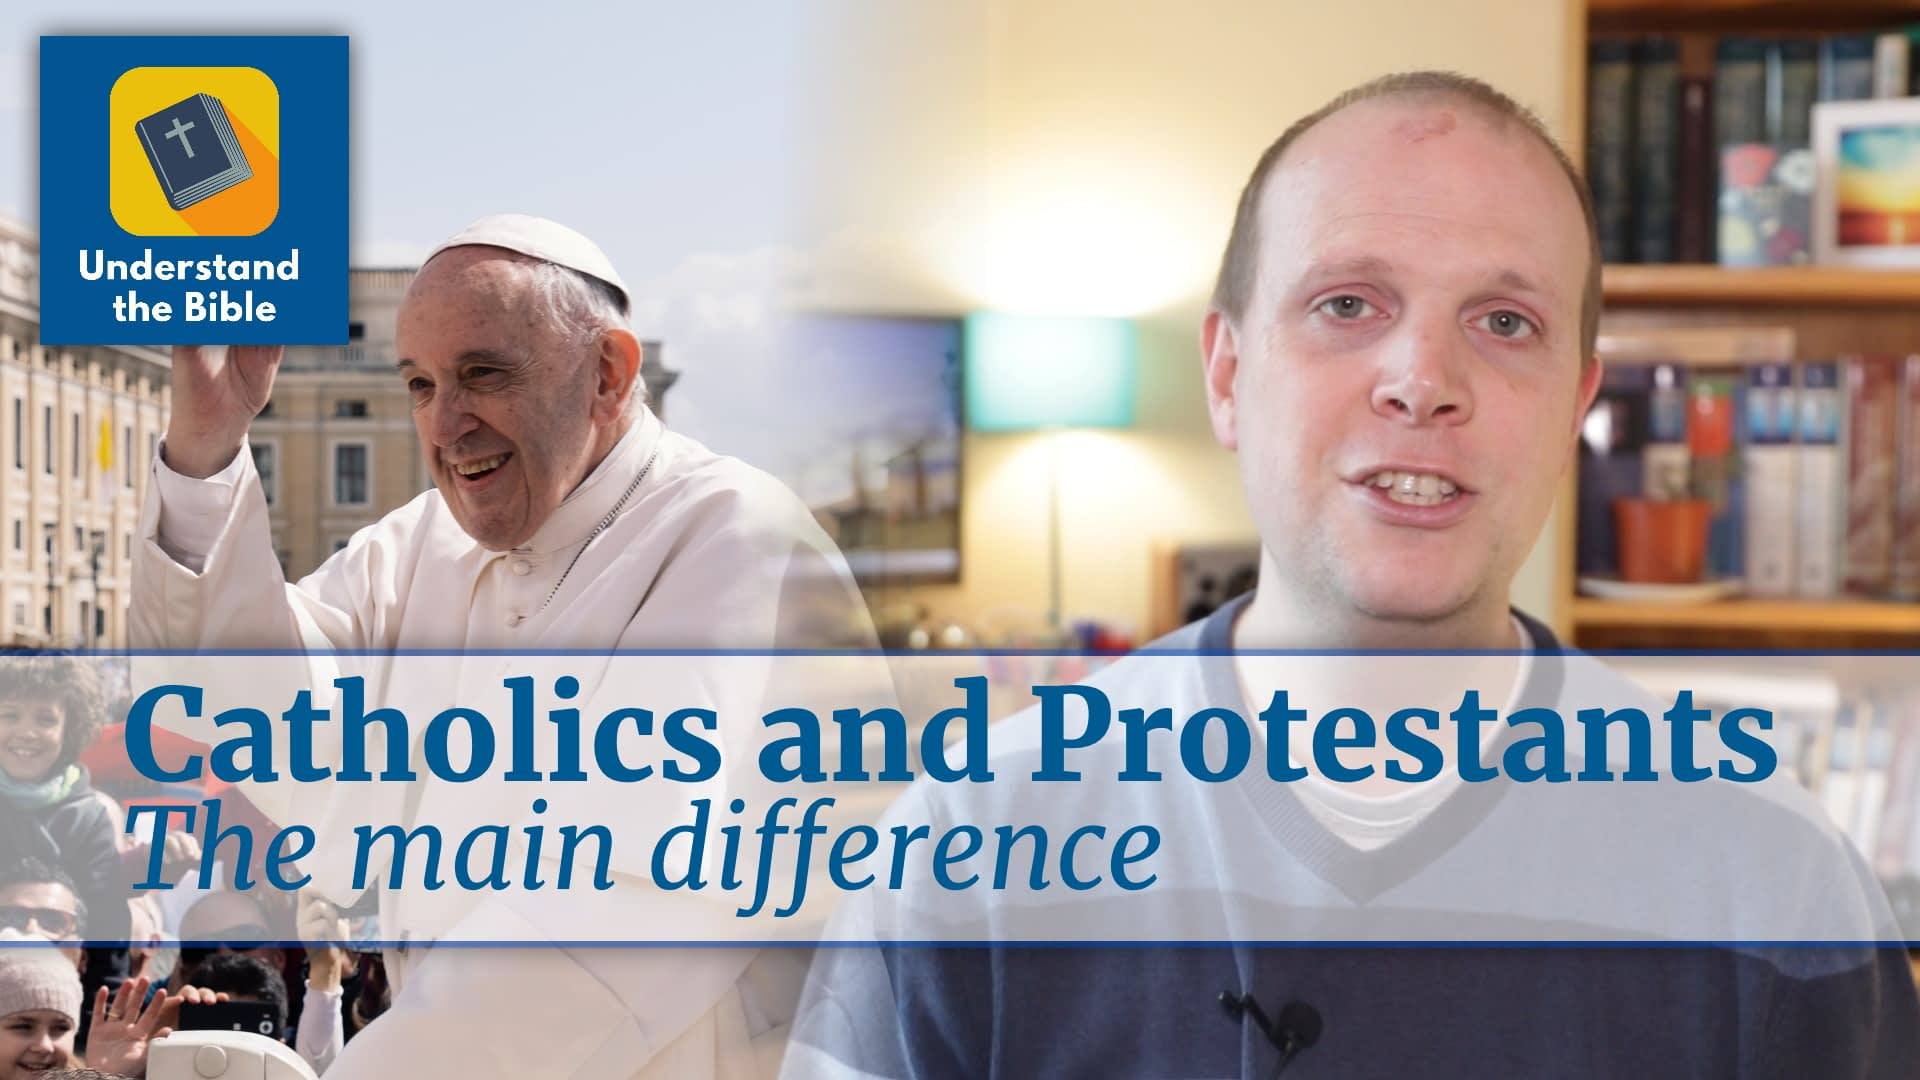 Main difference between Protestants and Catholics